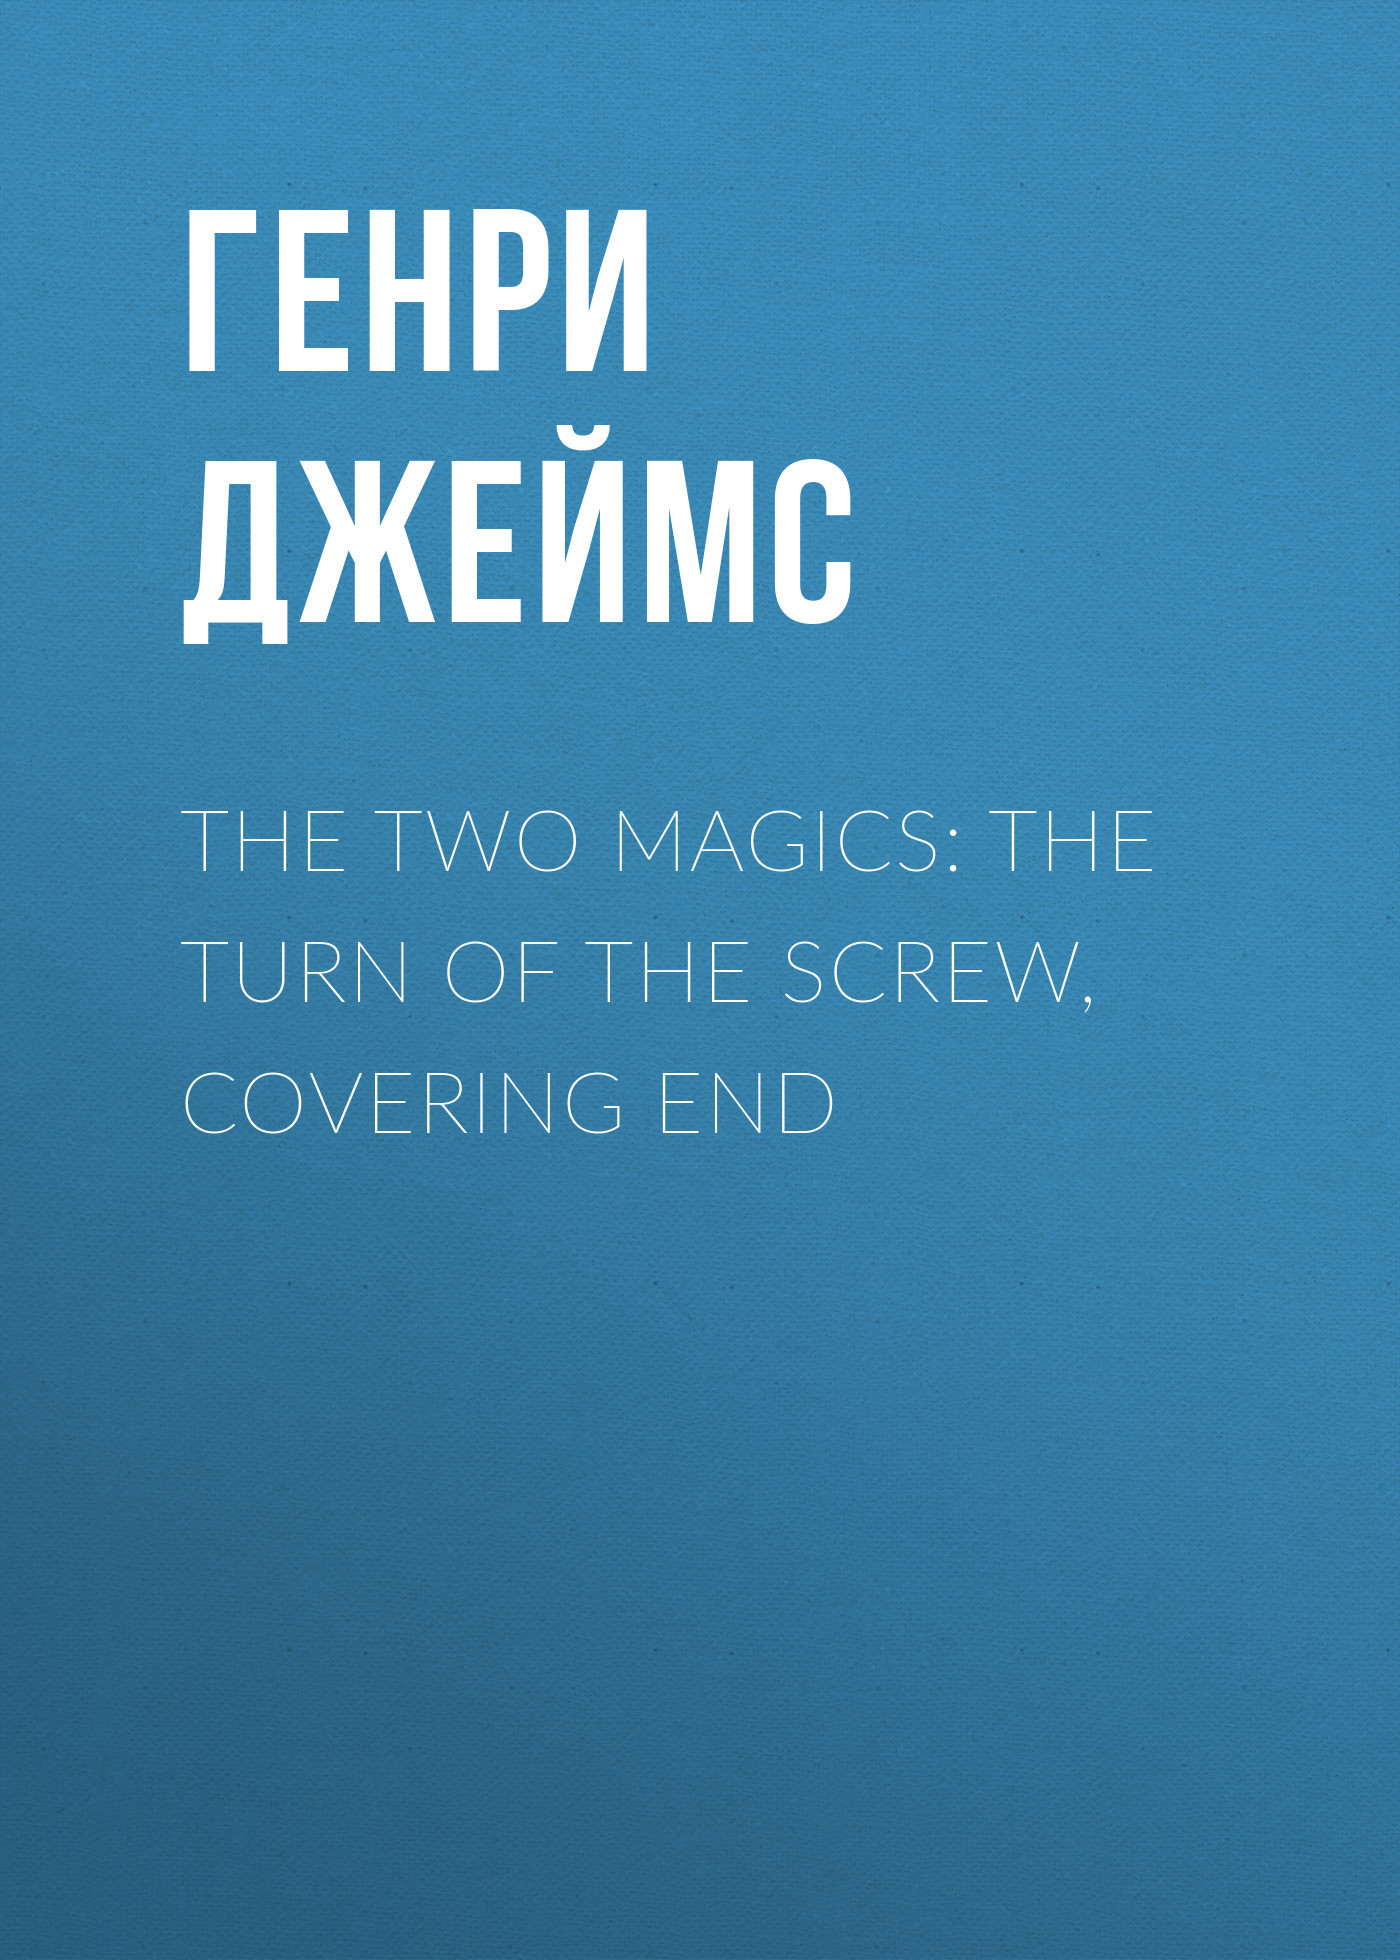 Генри Джеймс The Two Magics: The Turn of the Screw, Covering End sitemap html page 7 page 10 page 8